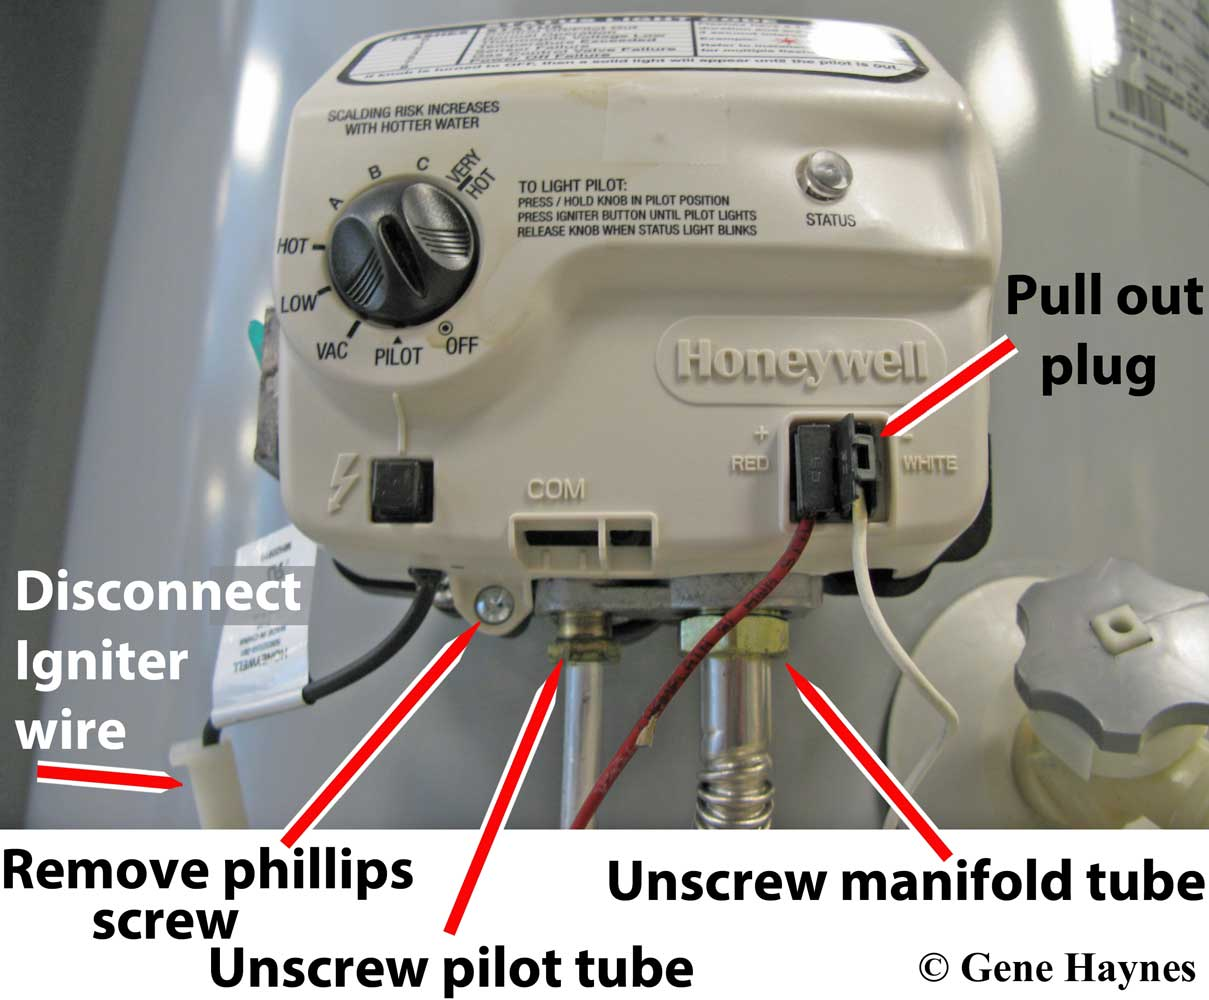 How To Replace Honeywell Gas Control Valve Wiring Thermostat 2 Wires 1 Pull Out Plug With Red And White Located On Front Of Piezo Igniter Wire Comes Apart 3 Unscrew Manifold Tube 4 Pilot